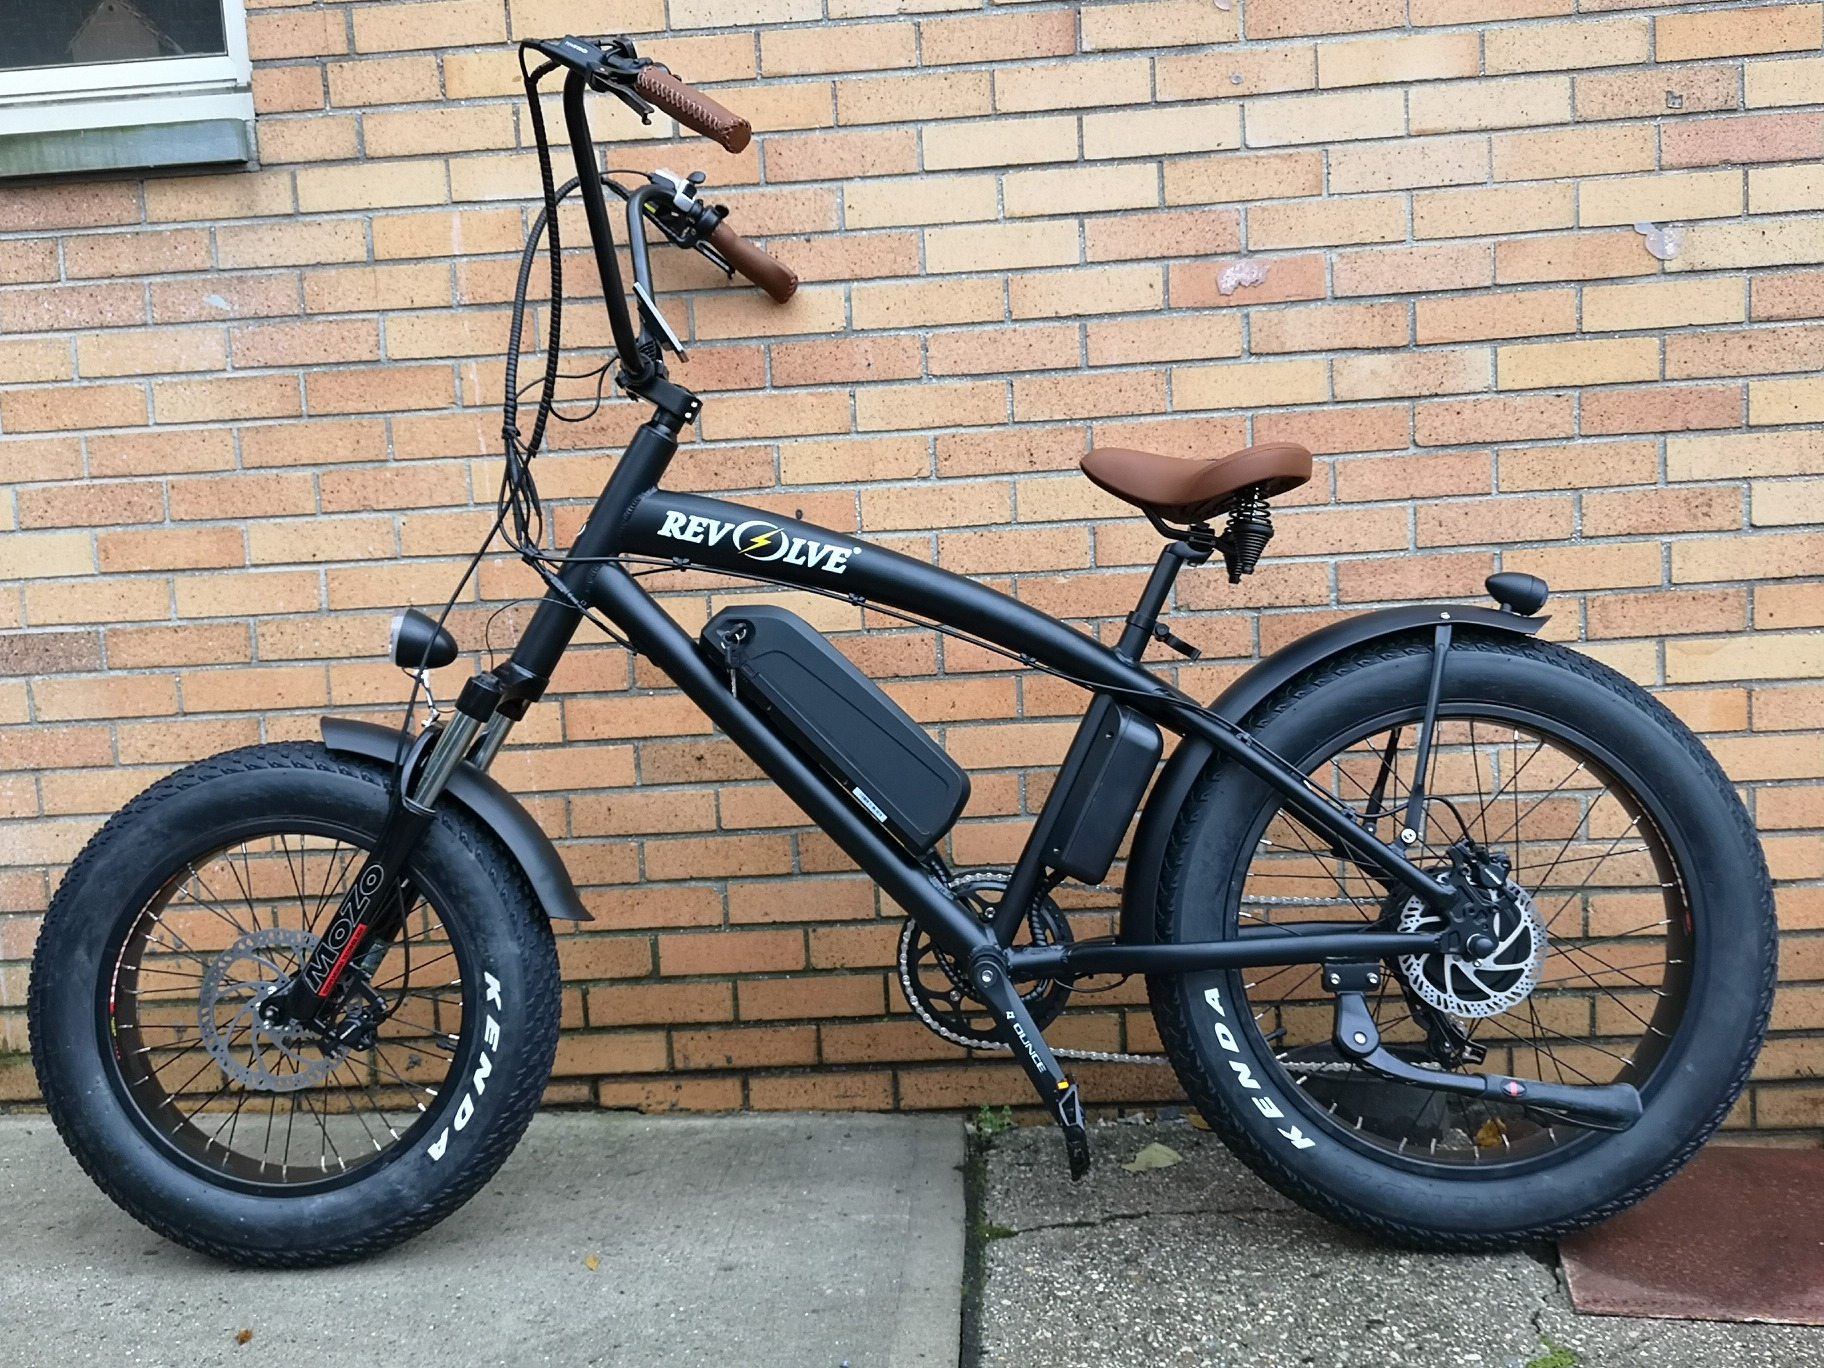 The Chopper Electric Bike